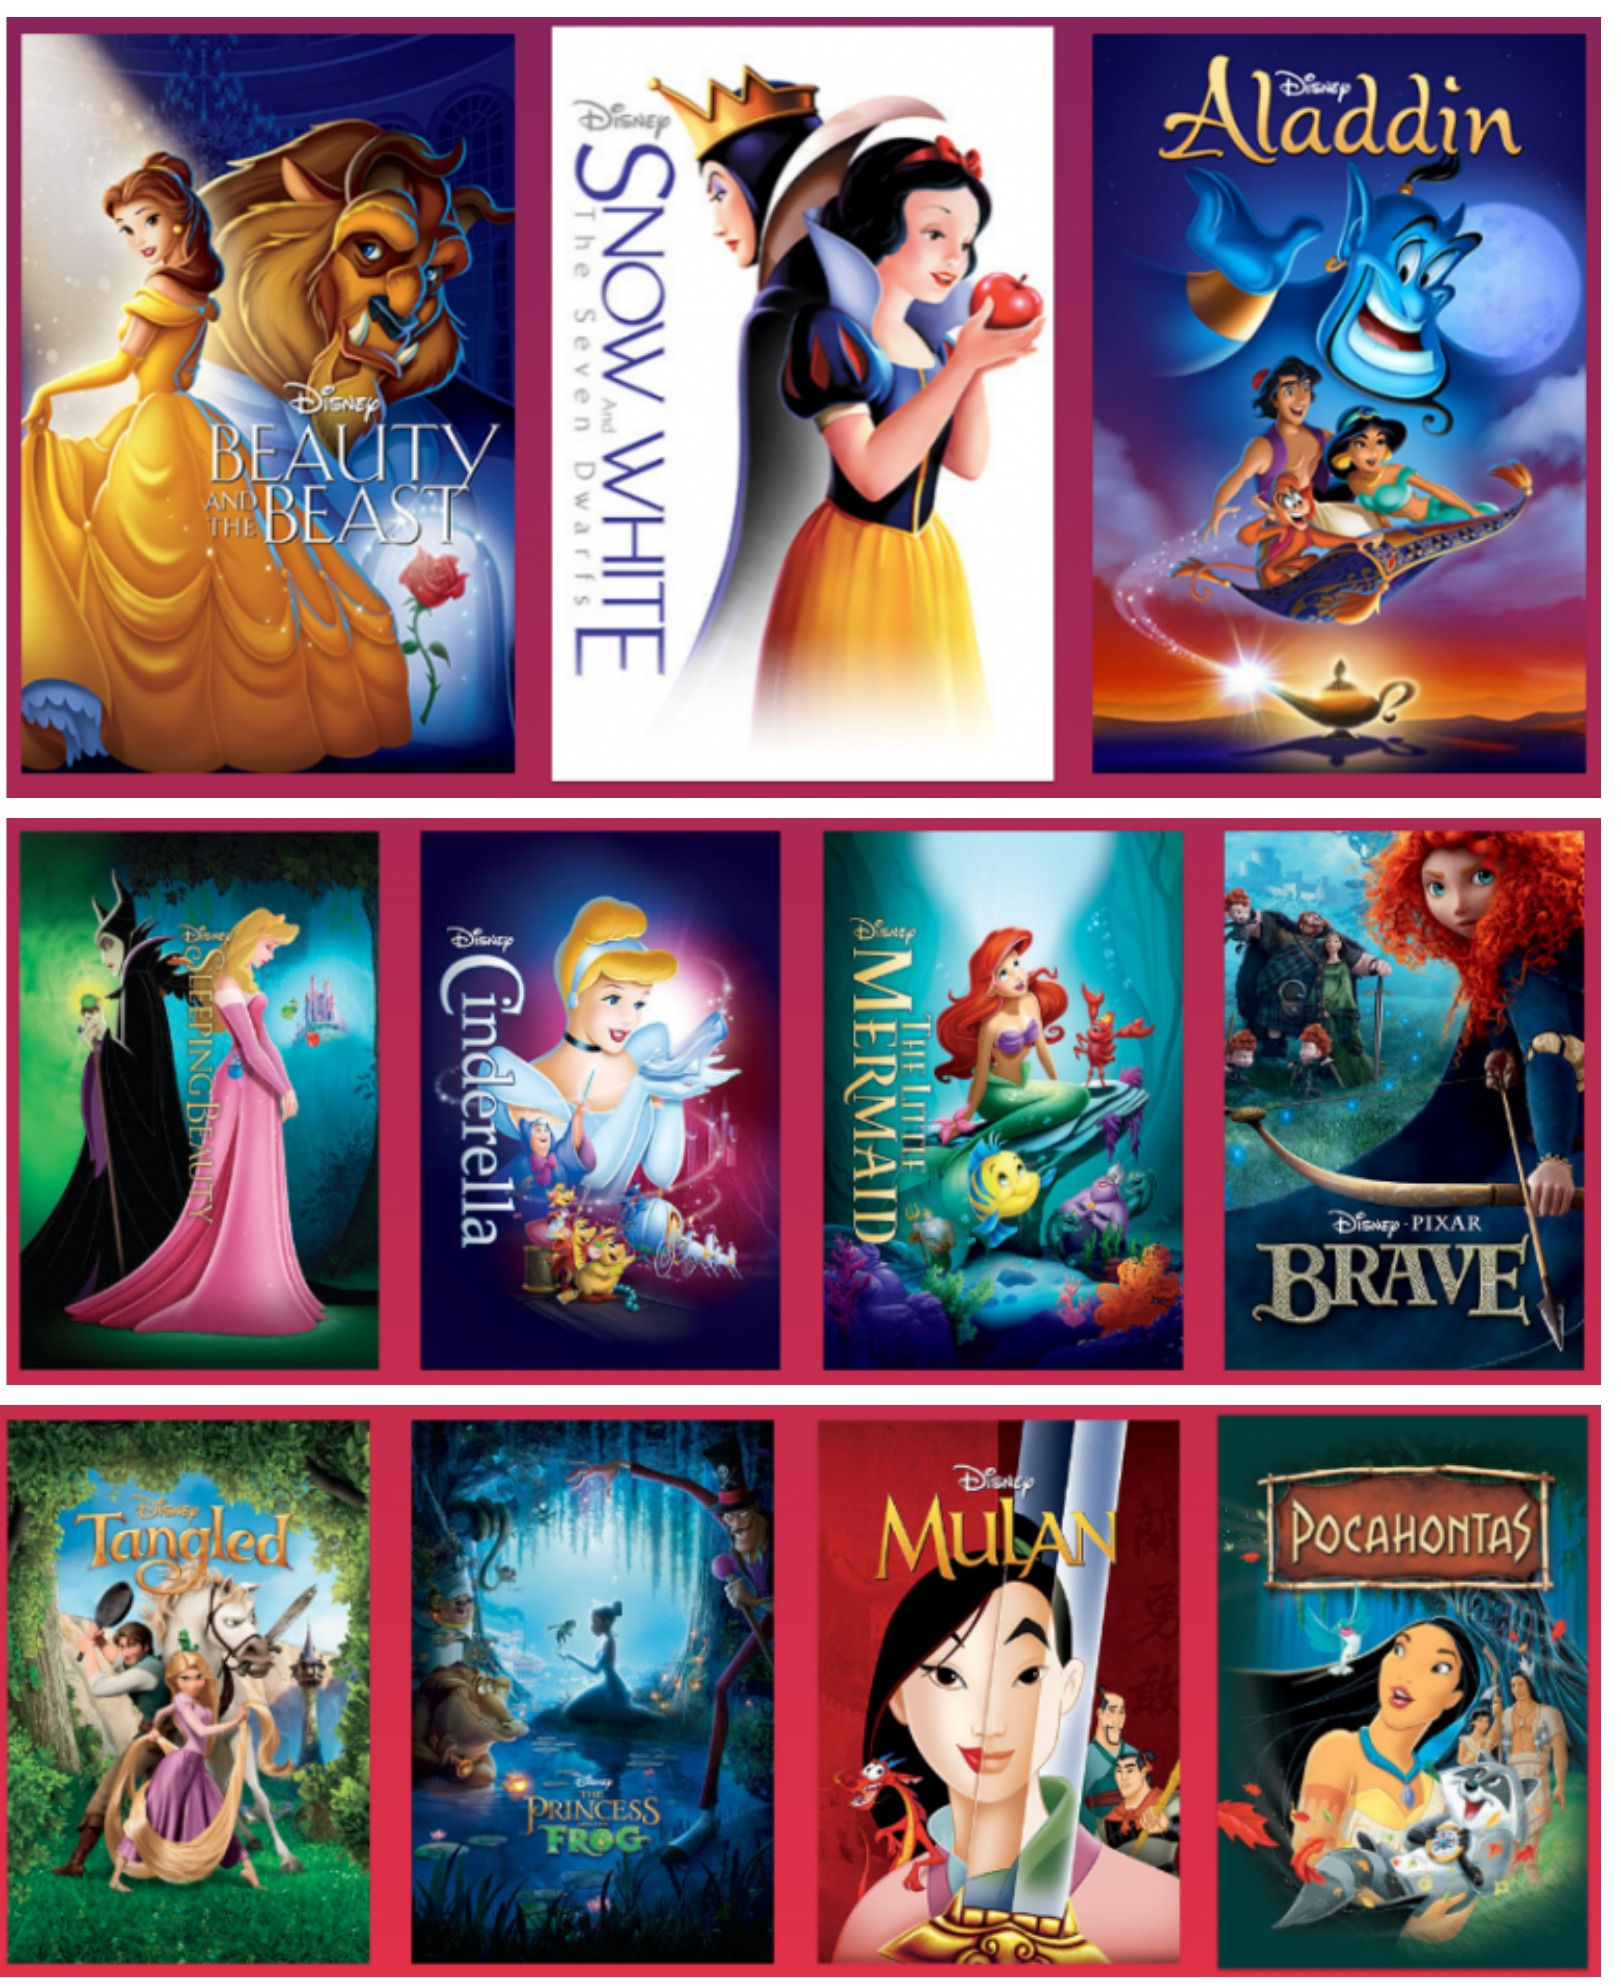 Disney Princess Fans : All the Princess Movies are Coming ...